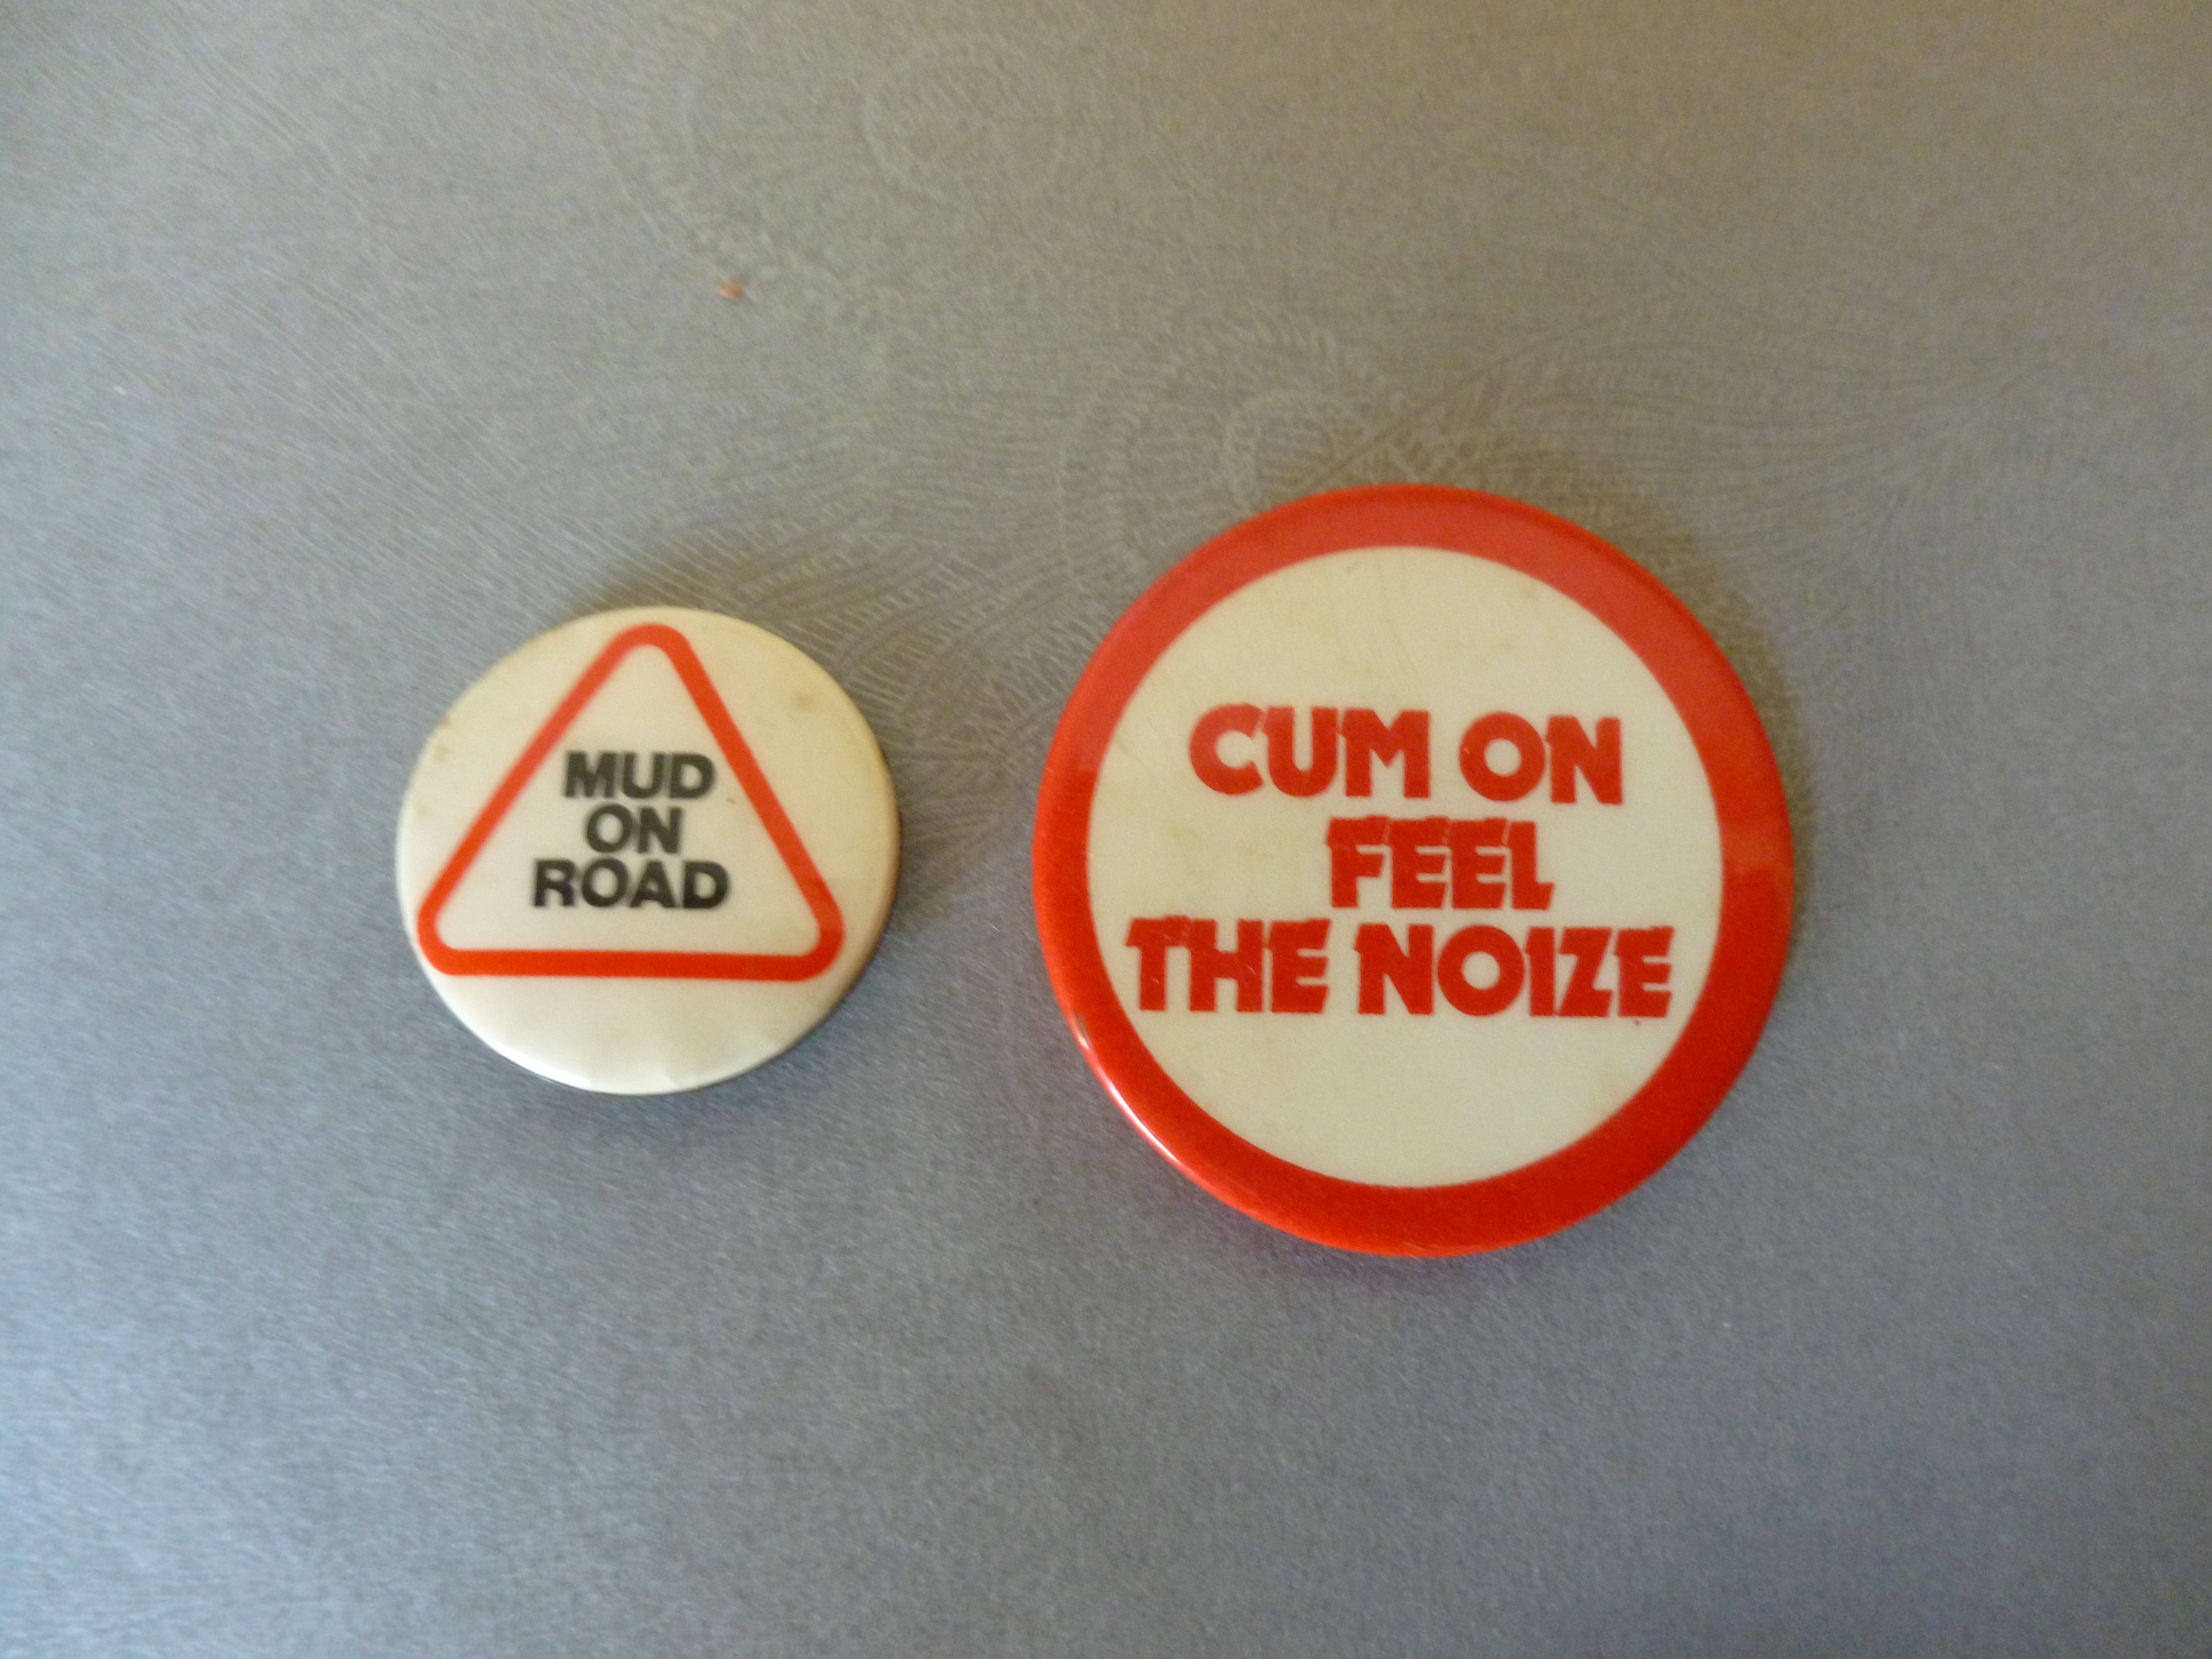 SLADE - Cum On Feel The Noize badge and MUD - Mud On Road badge from